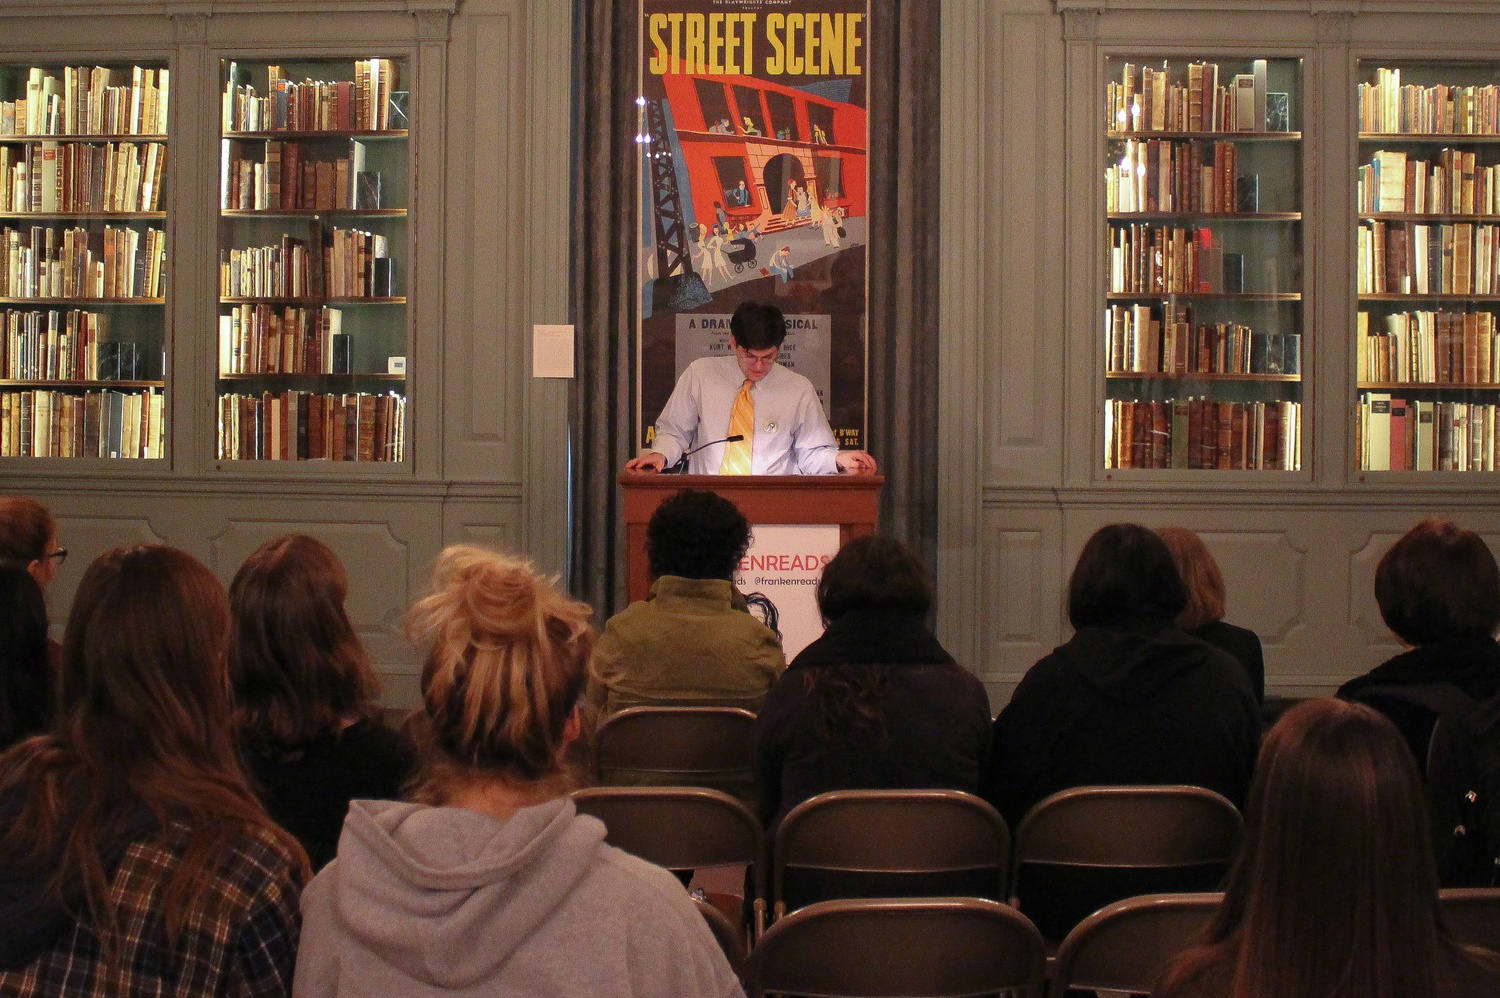 There was a marathon reading of Mary Shelley's Frankenstein in Houghton Library from 9am until 4pm Wednesday.